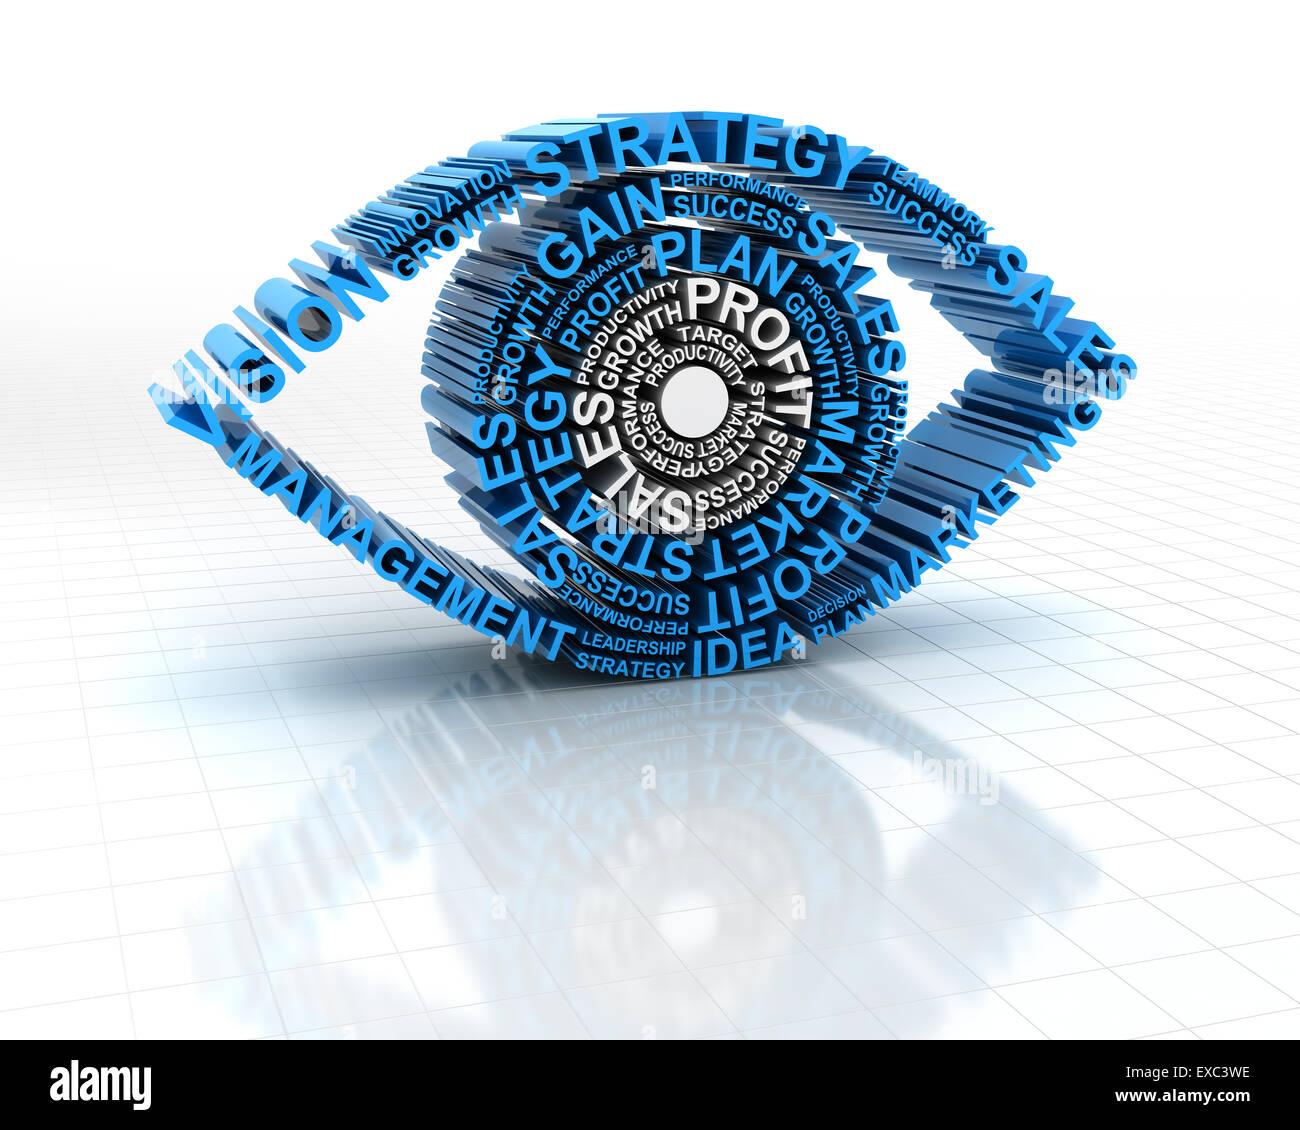 Business vision - Stock Image